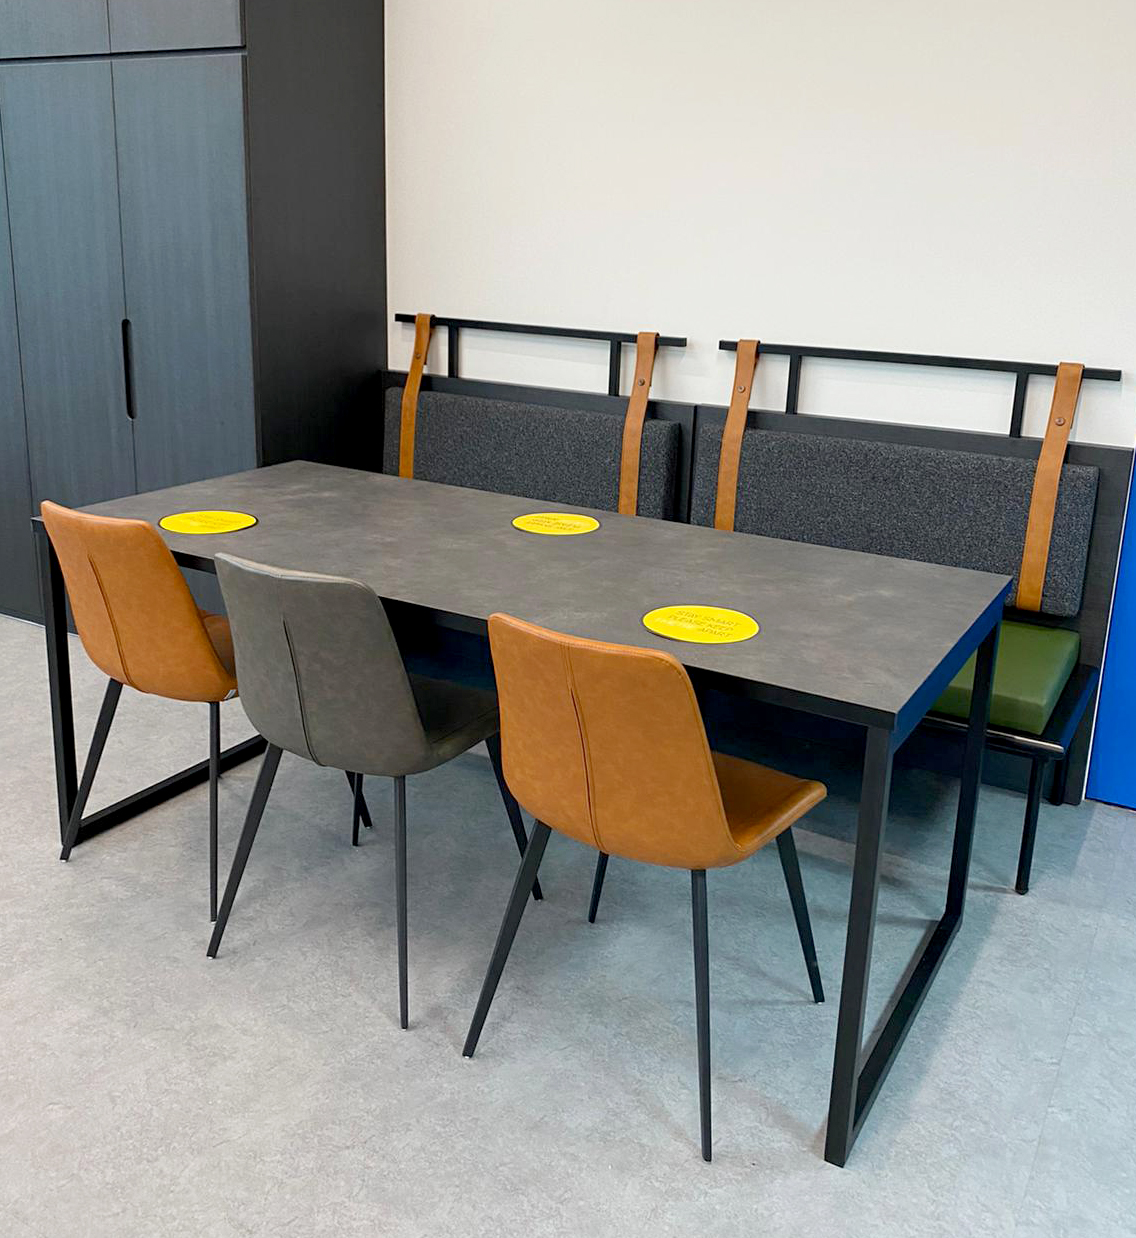 Mettler-Toledo | Product Seen: [Strap booth #2, Ricky Table Base – Customisable & Eunice Side chair]